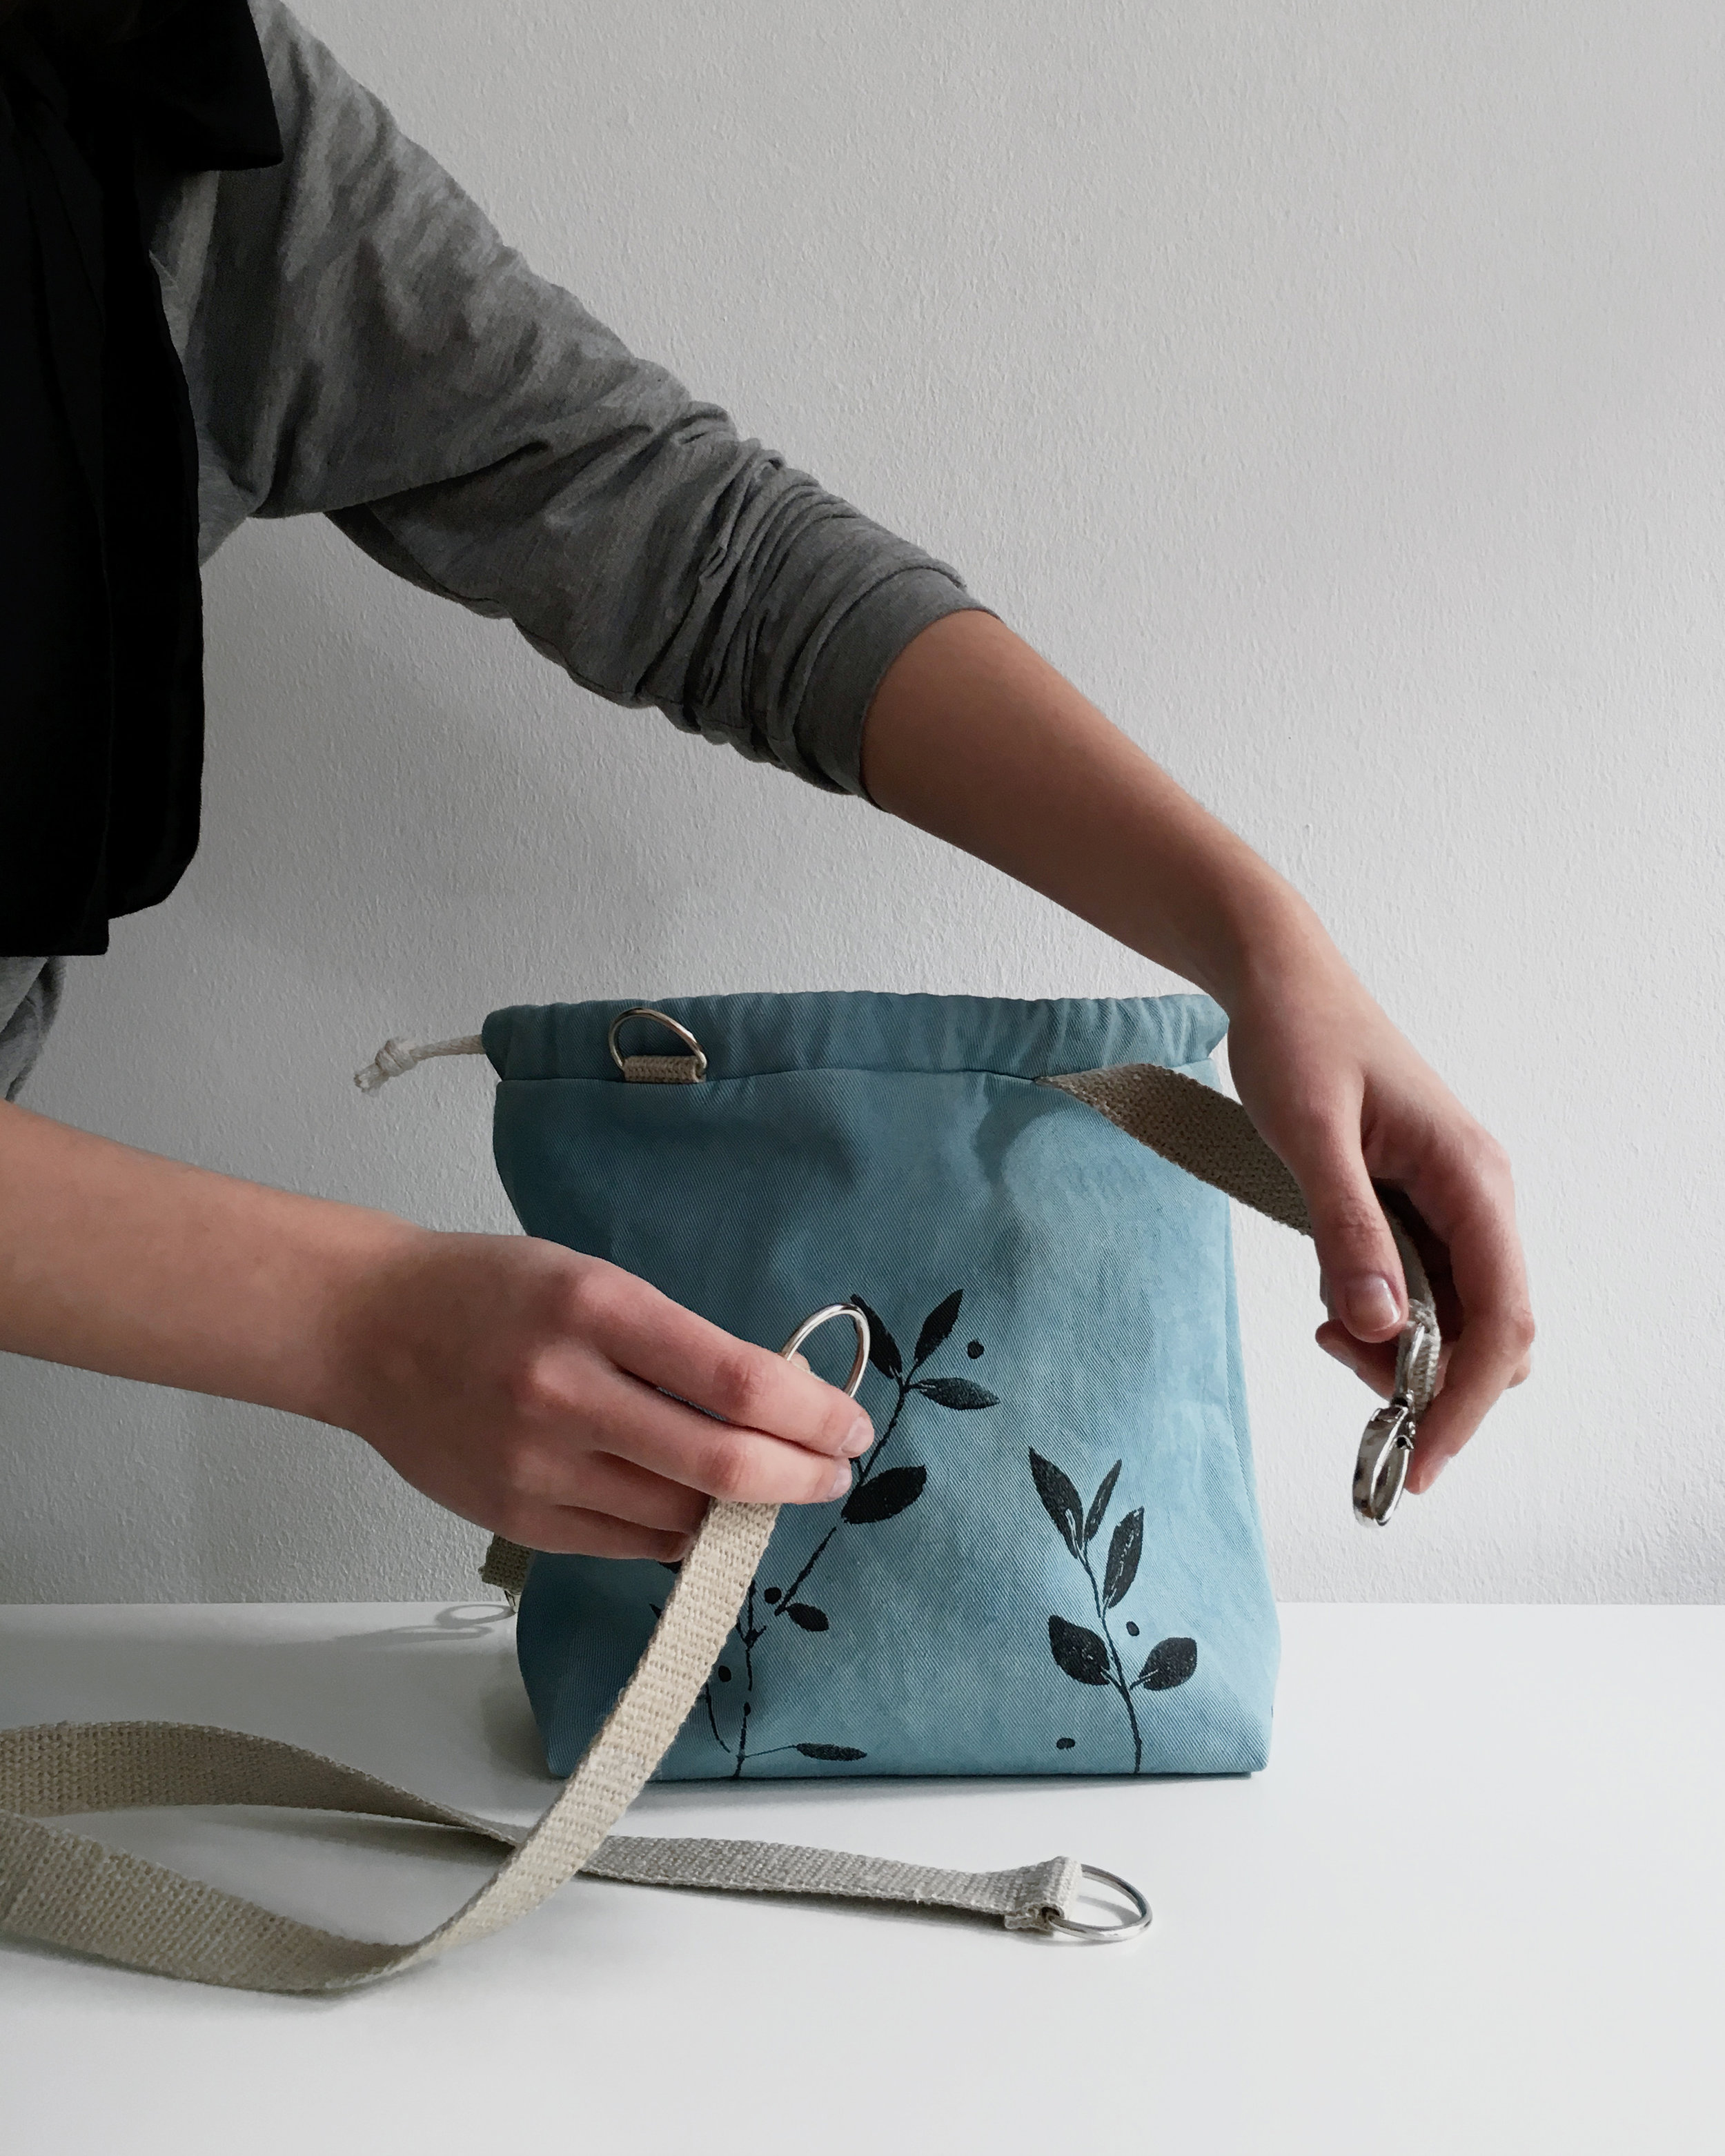 Dyed with local plants or kitchen waste, all made by hand in Berlin #knittingbag #plantdyed #dyes